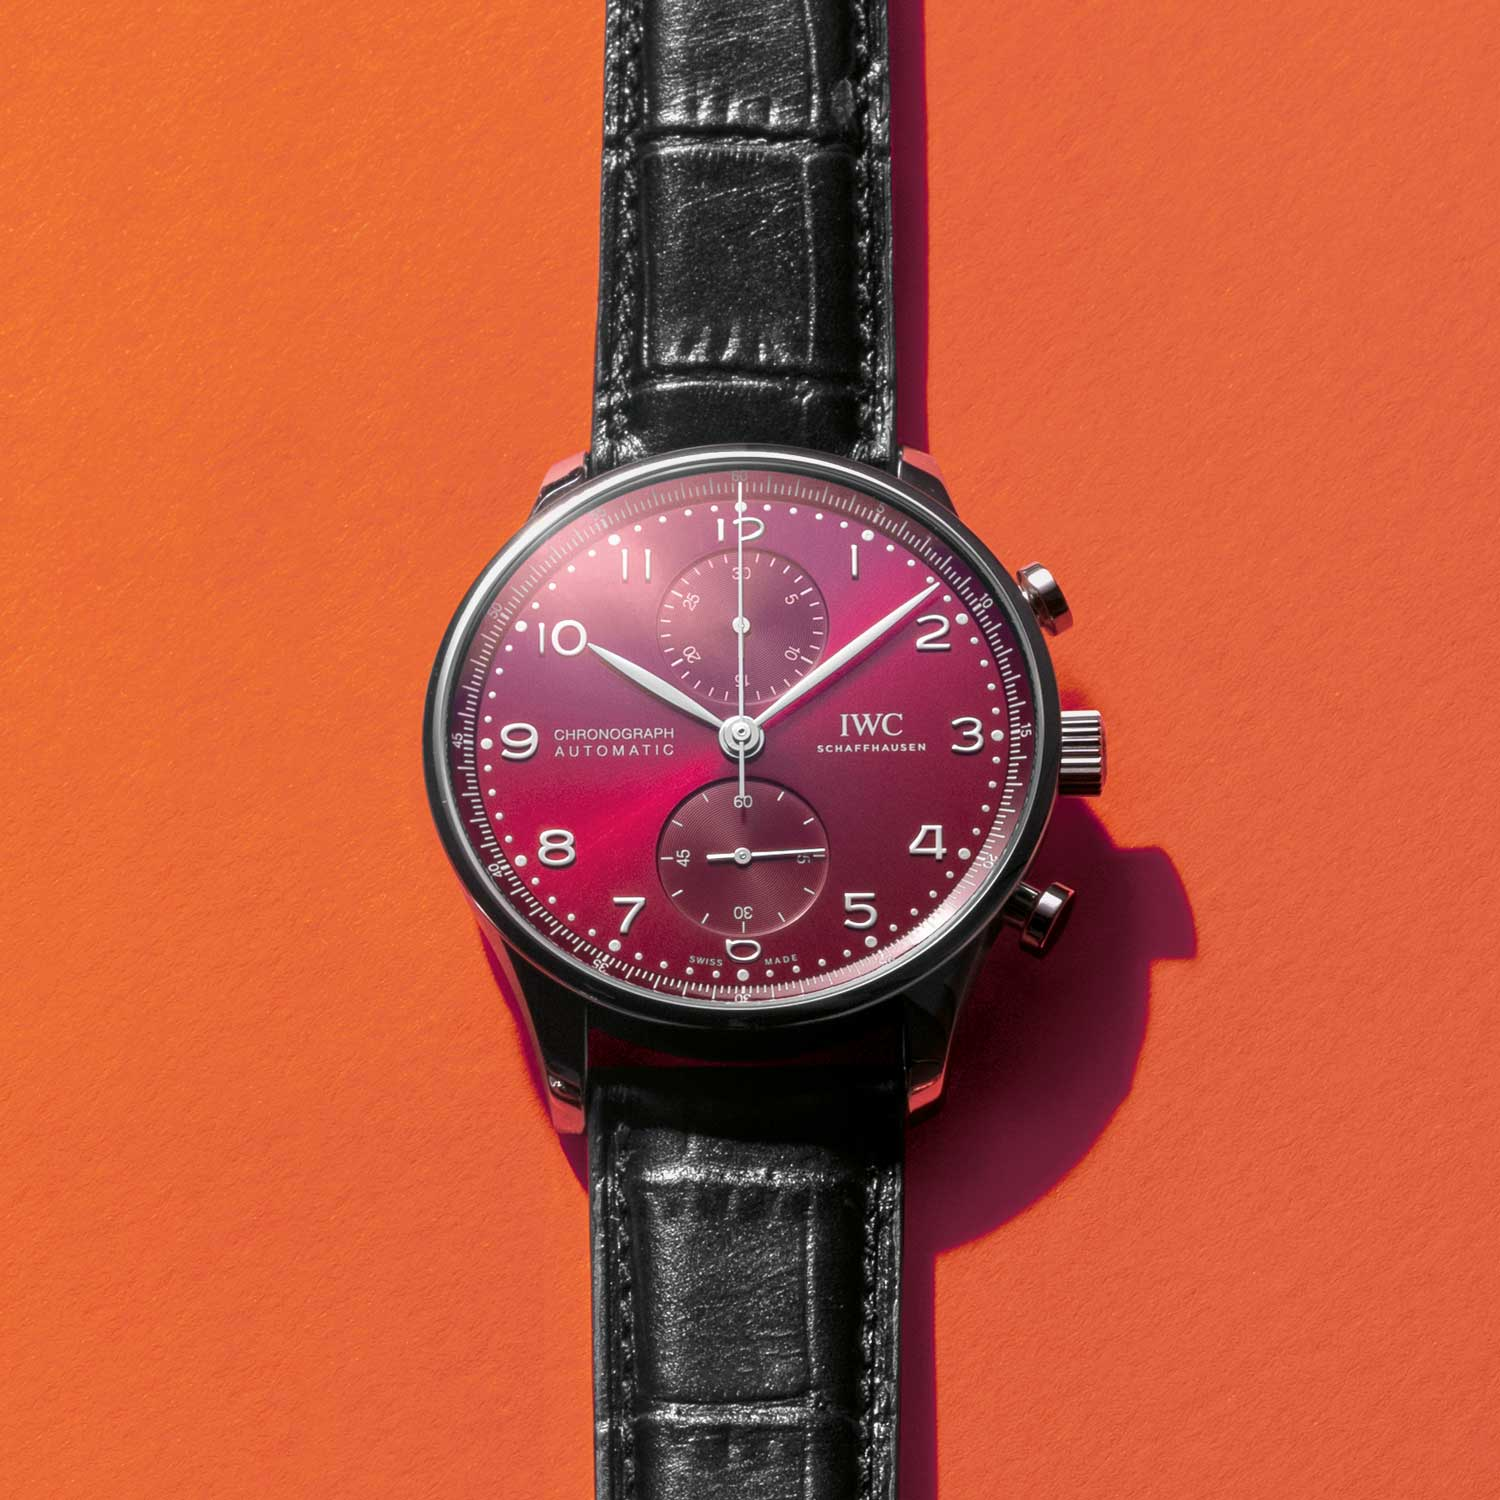 IWC Schaffhausen Portugieser Chronograph in stainless steel with a burgundy dial.